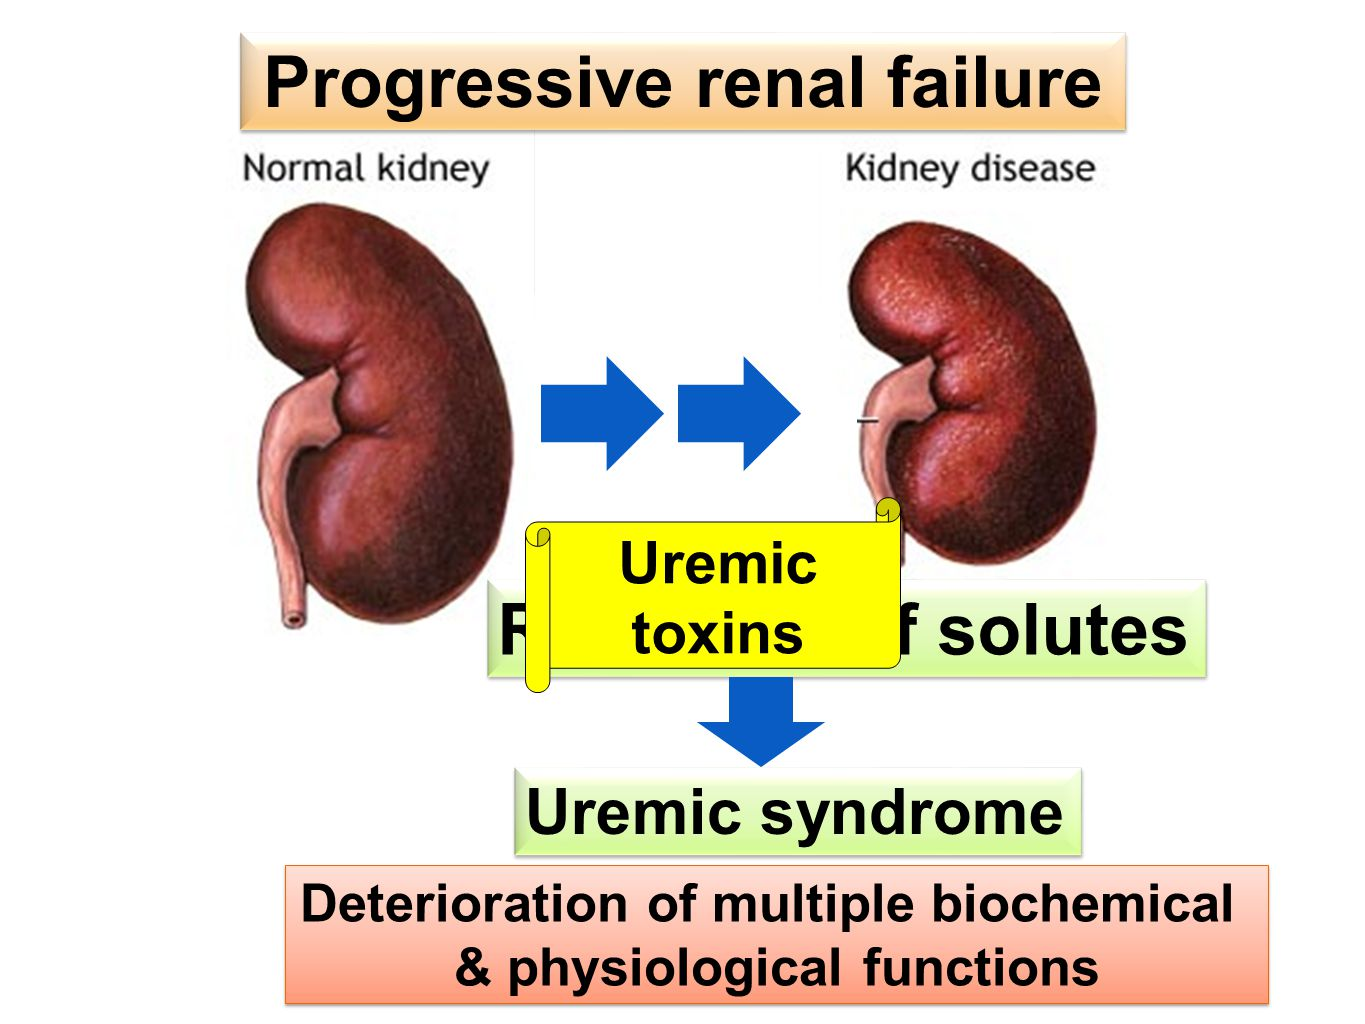 Retention of solutes Uremic syndrome Deterioration of multiple biochemical & physiological functions Deterioration of multiple biochemical & physiological functions Progressive renal failure Uremic toxins